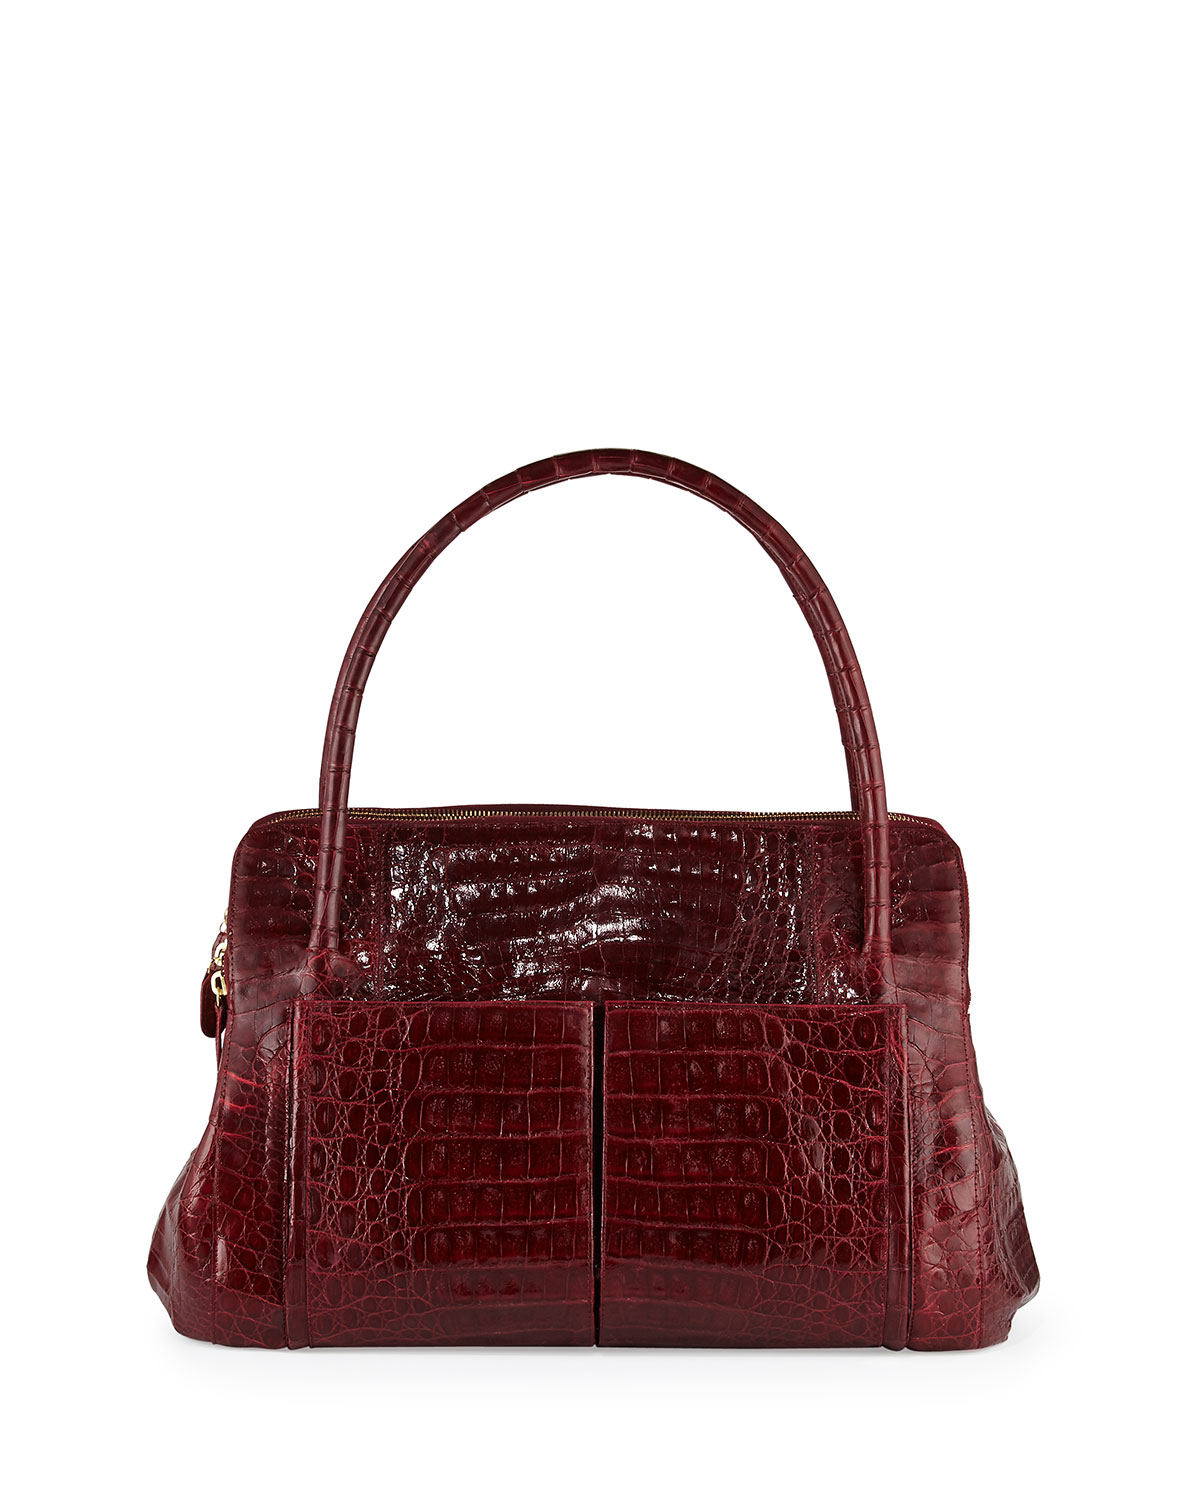 Nancy gonzalez linda medium crocodile tote bag lyst for Nancy gonzalez crocodile tote